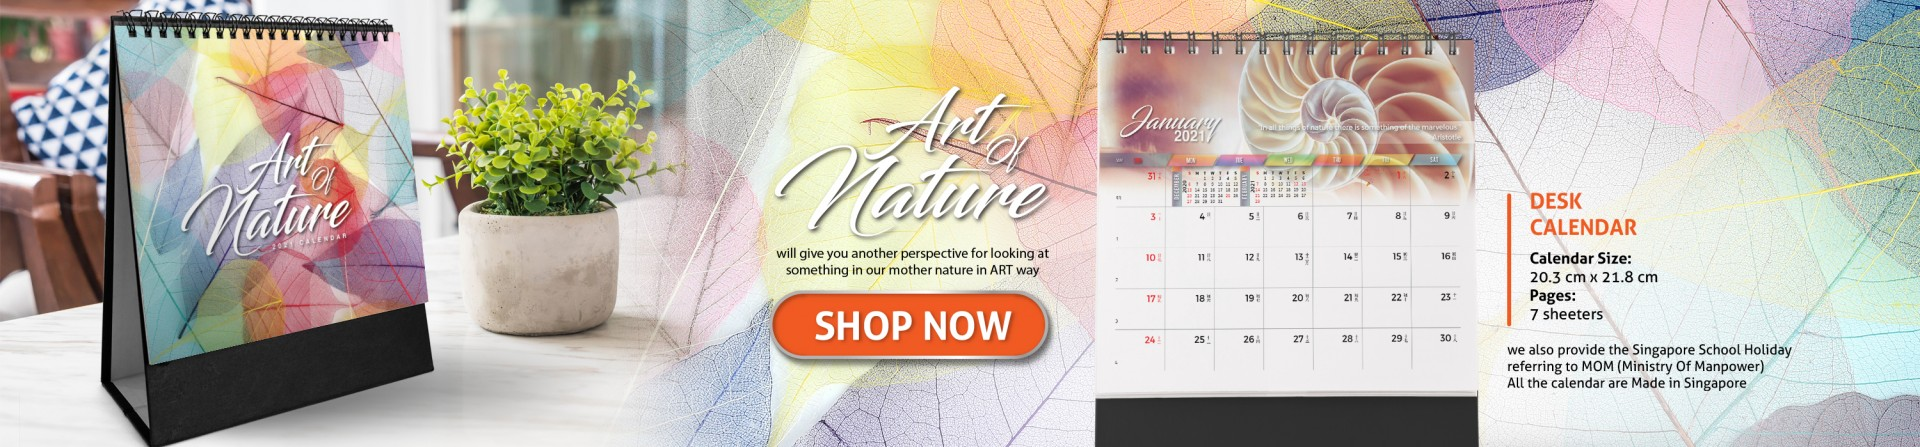 art of nature retail banner